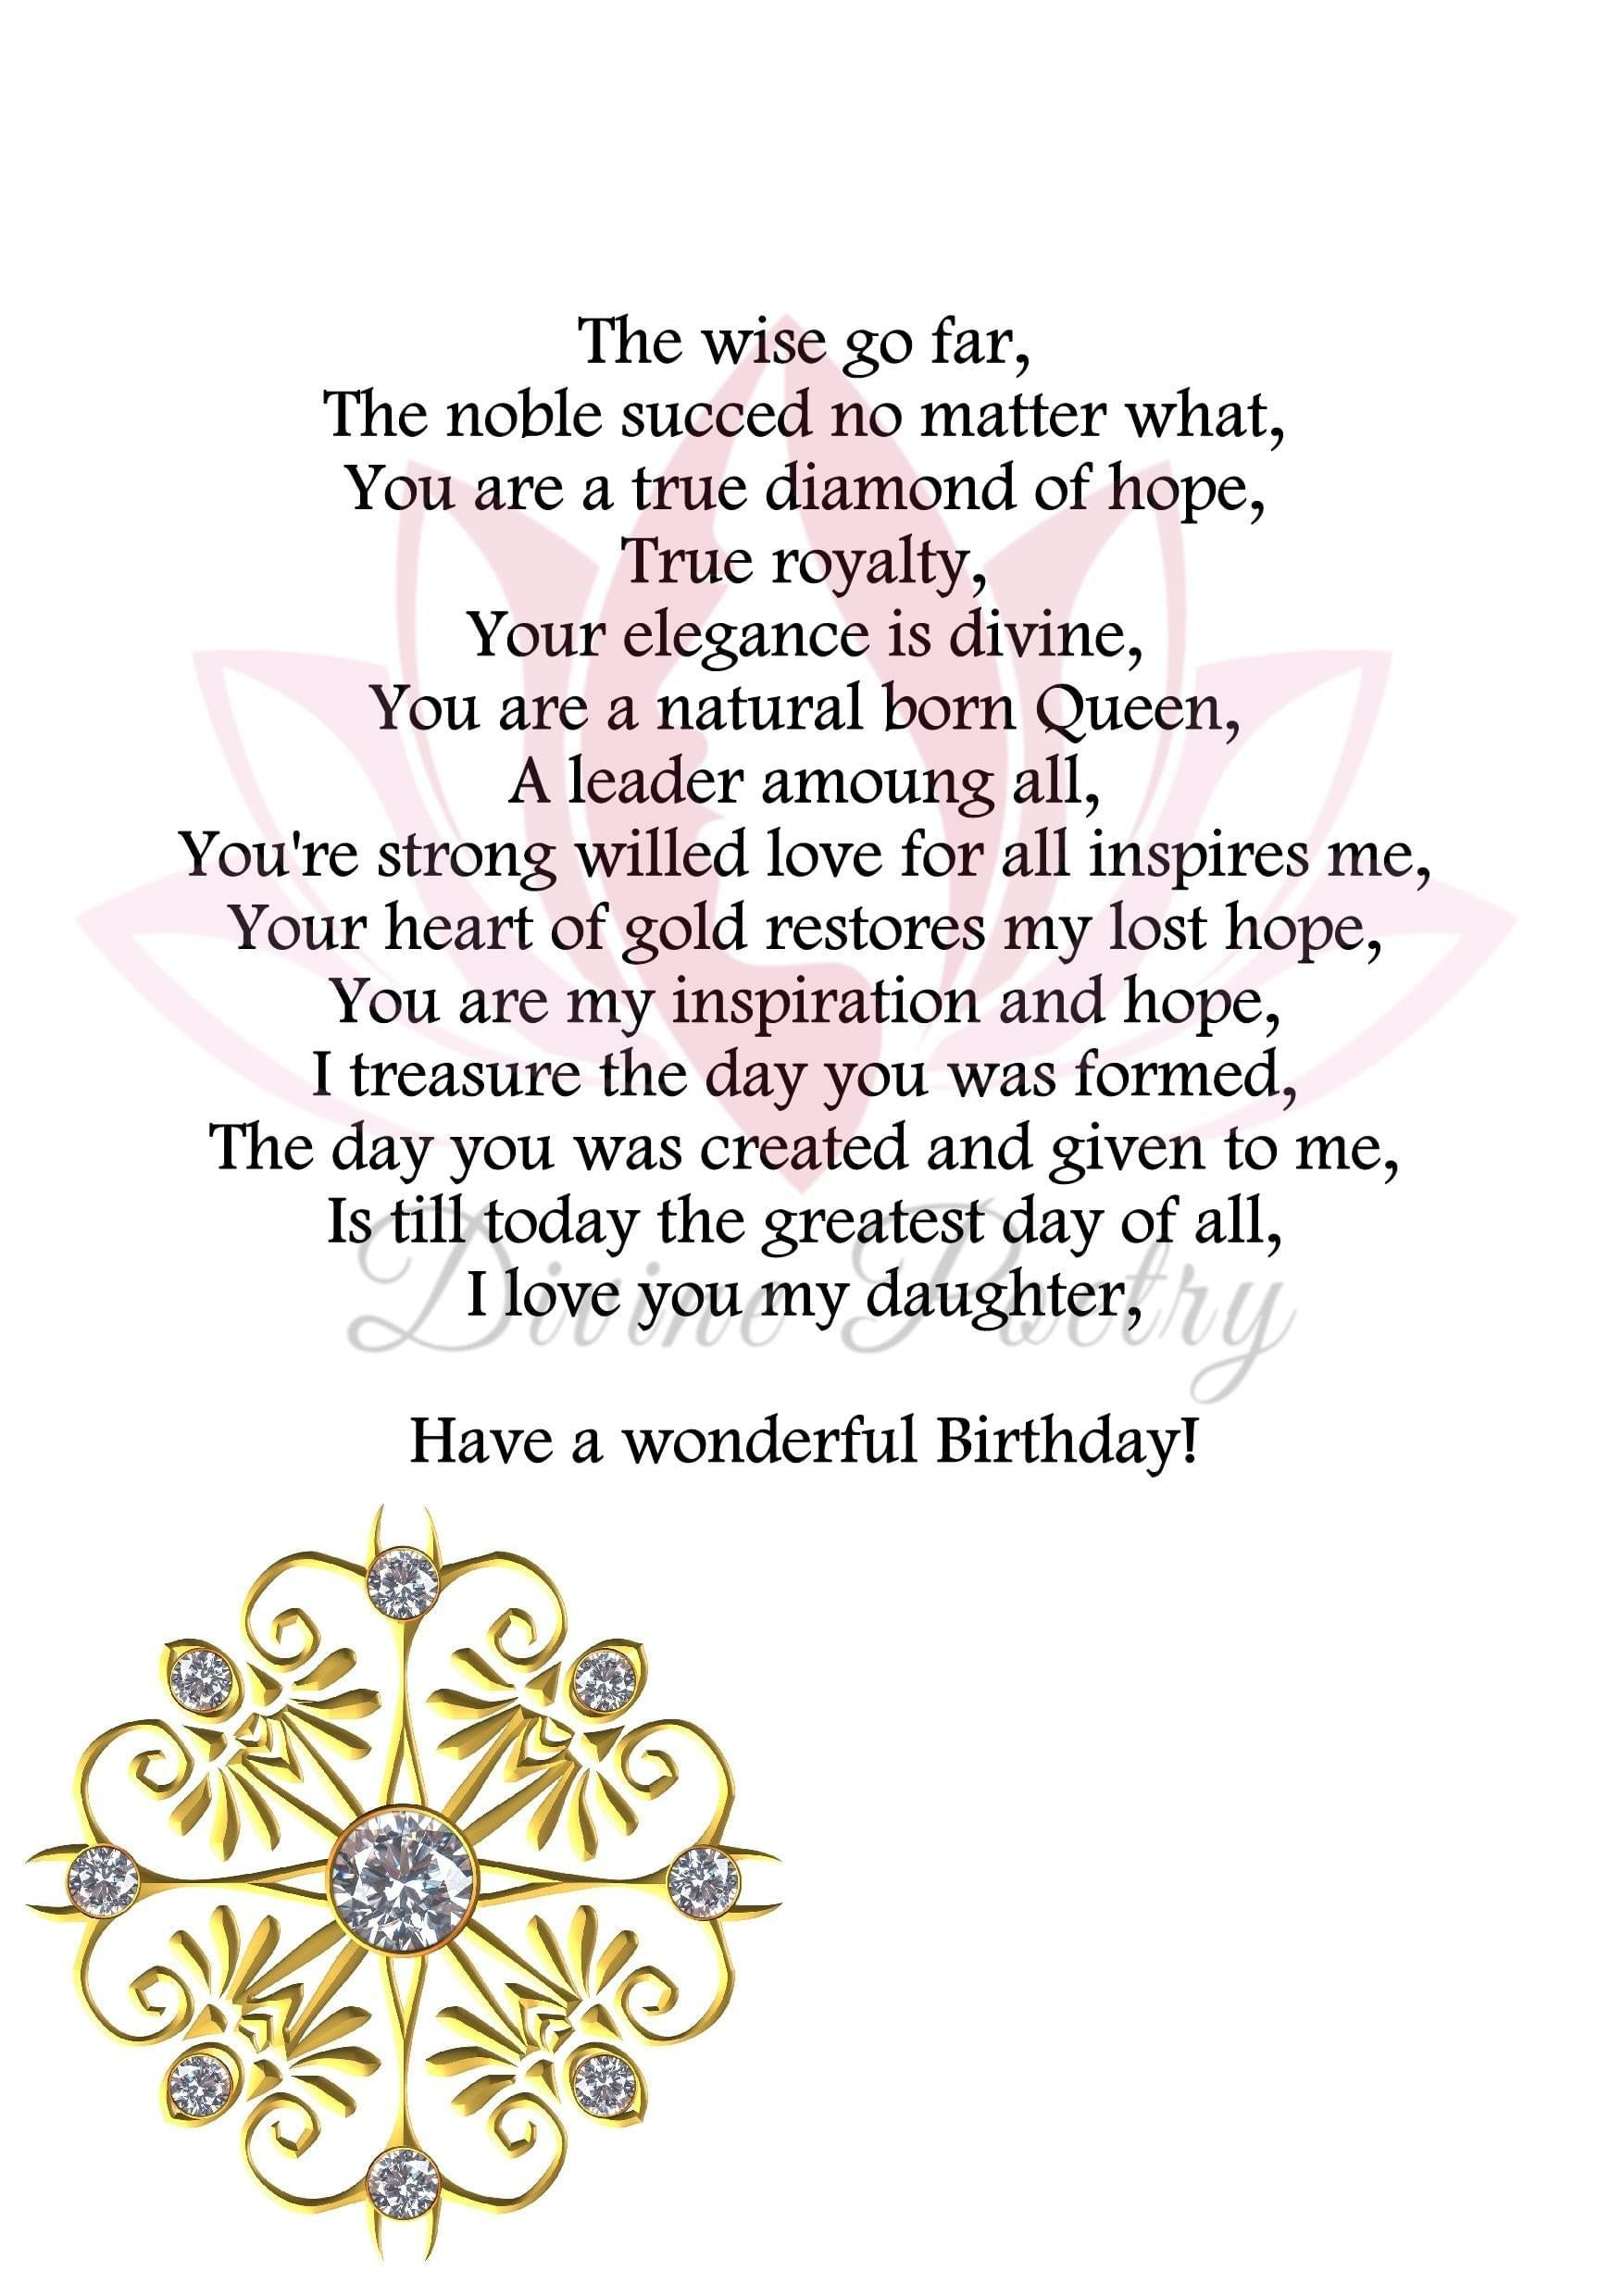 Happy Birthday Daughter - Divine Poetry